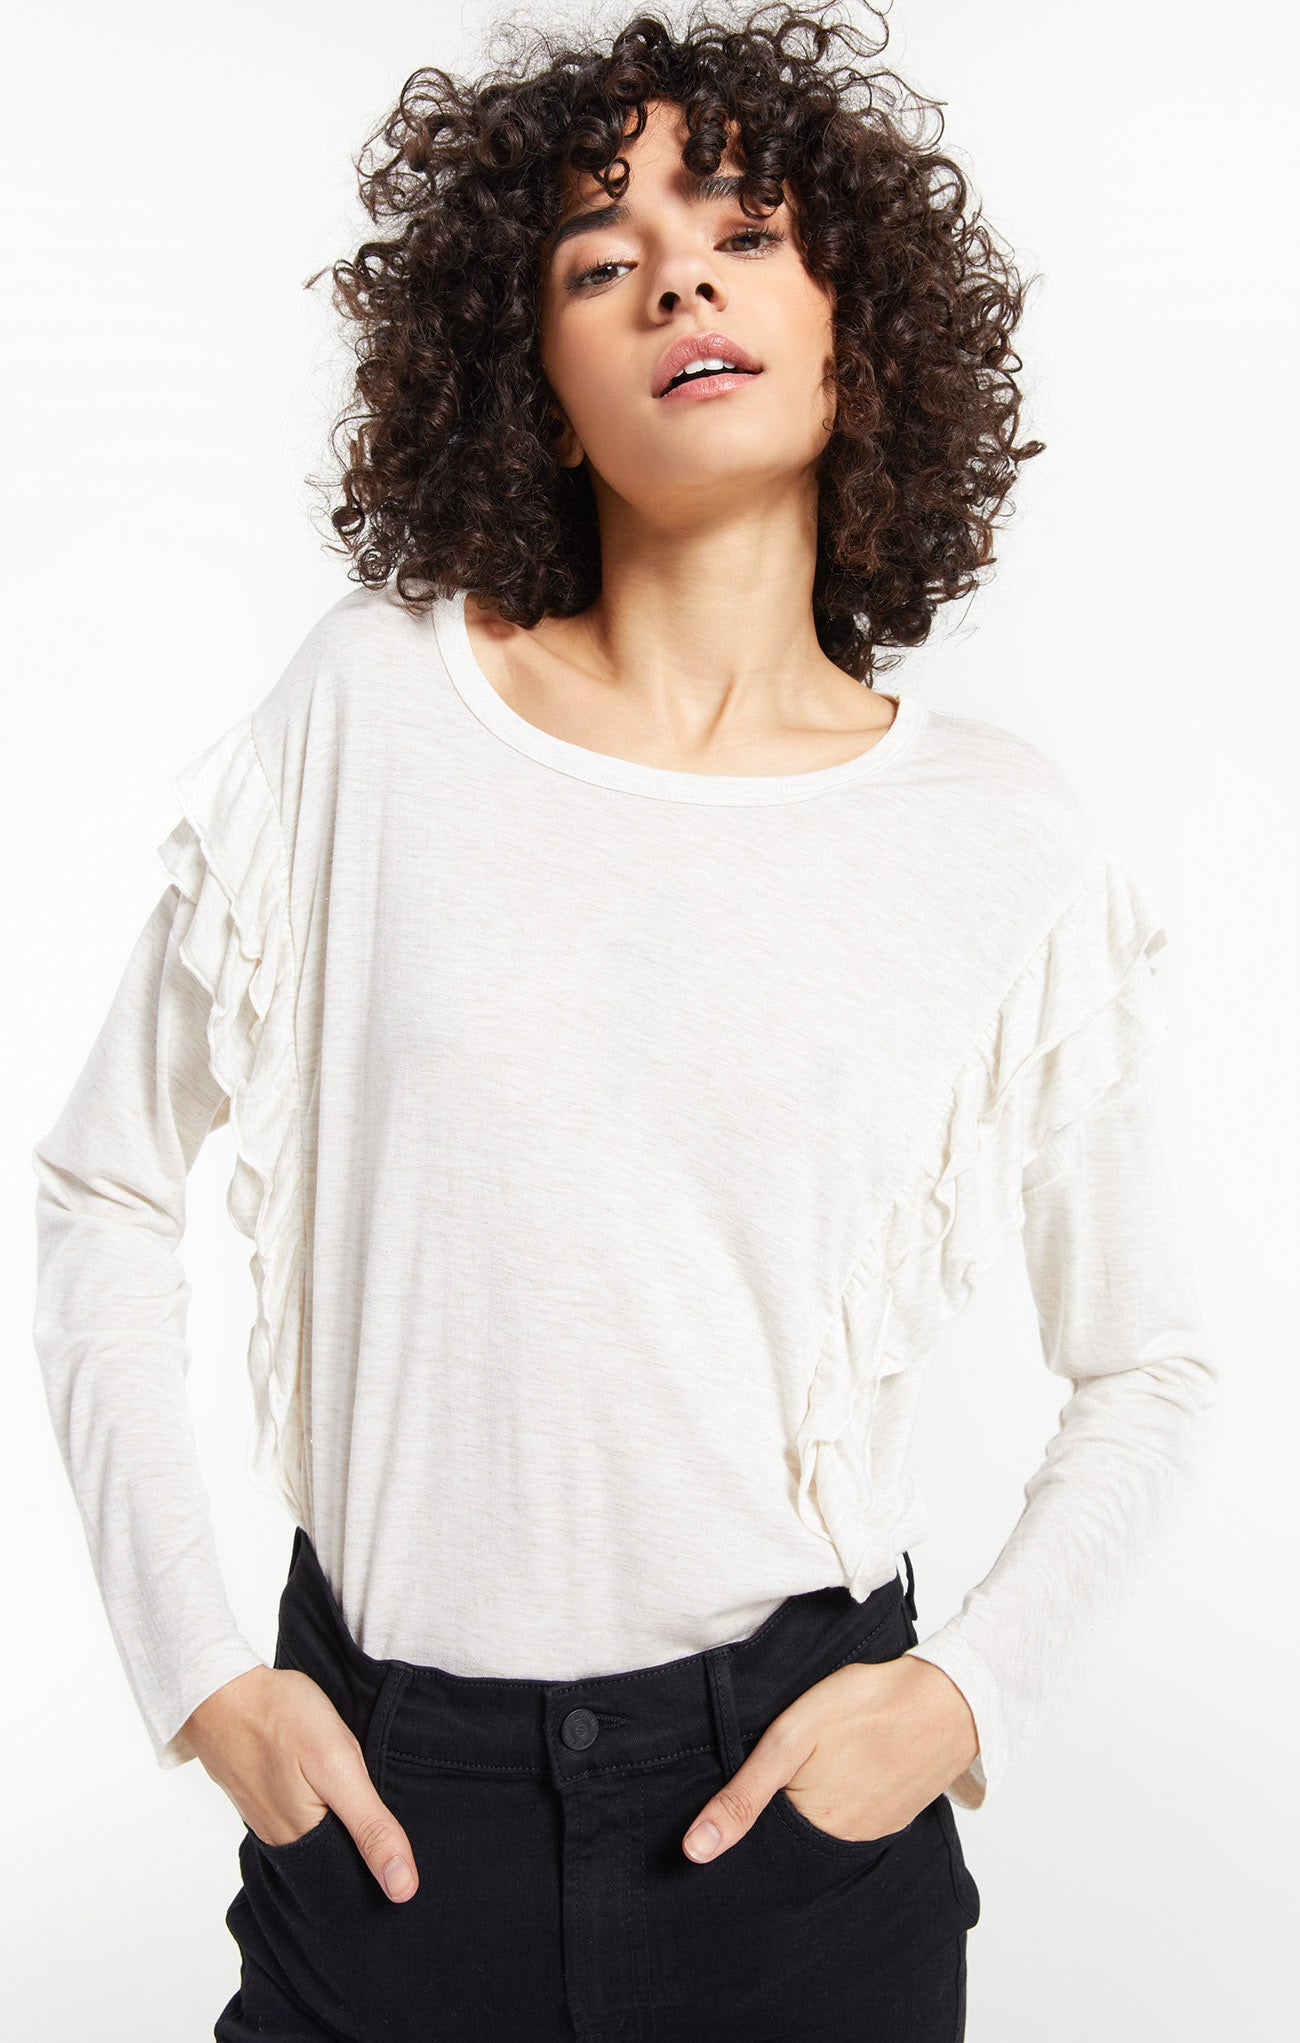 Tops Adele Sparkle Ruffle Top Adele Sparkle Ruffle Top